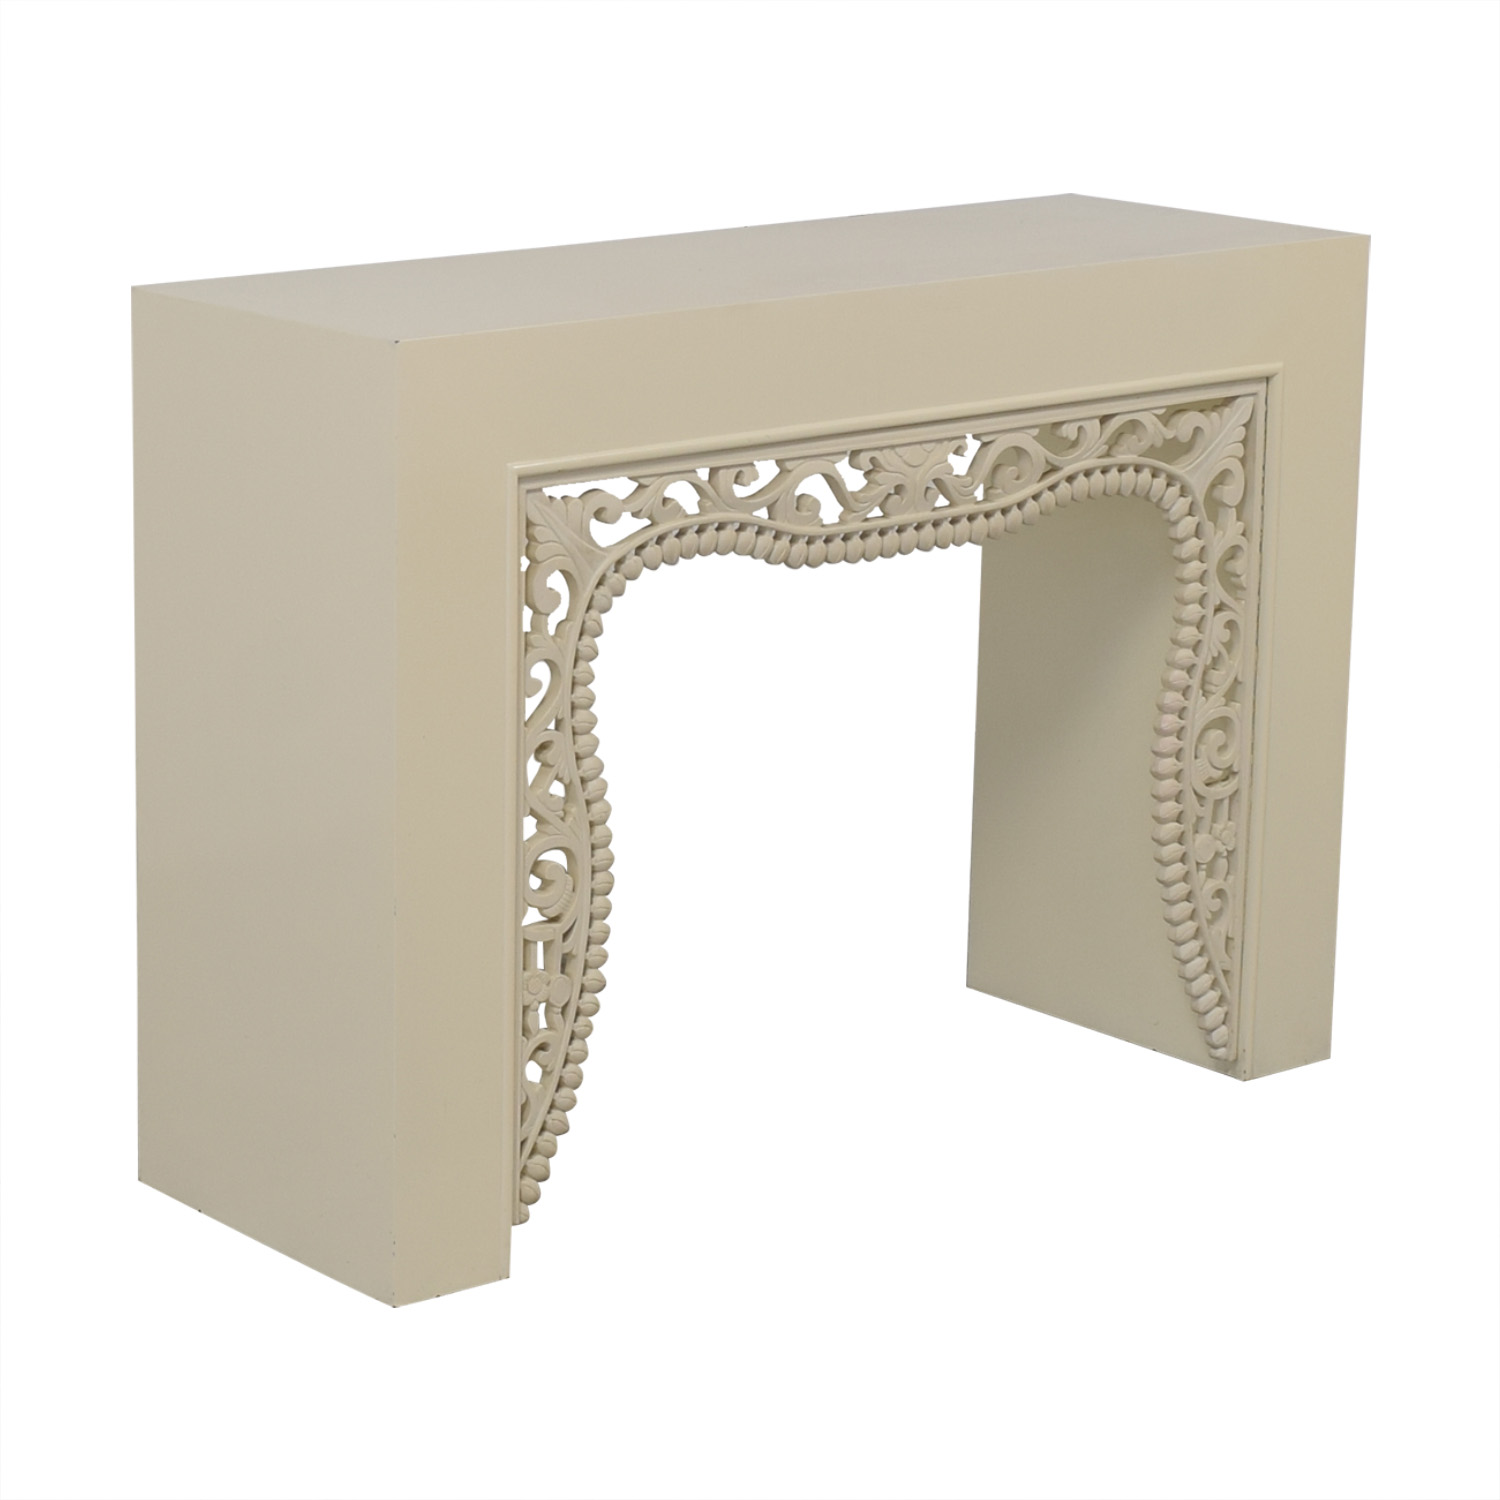 Shine by S.H.O Shangai White Lacquer Console used